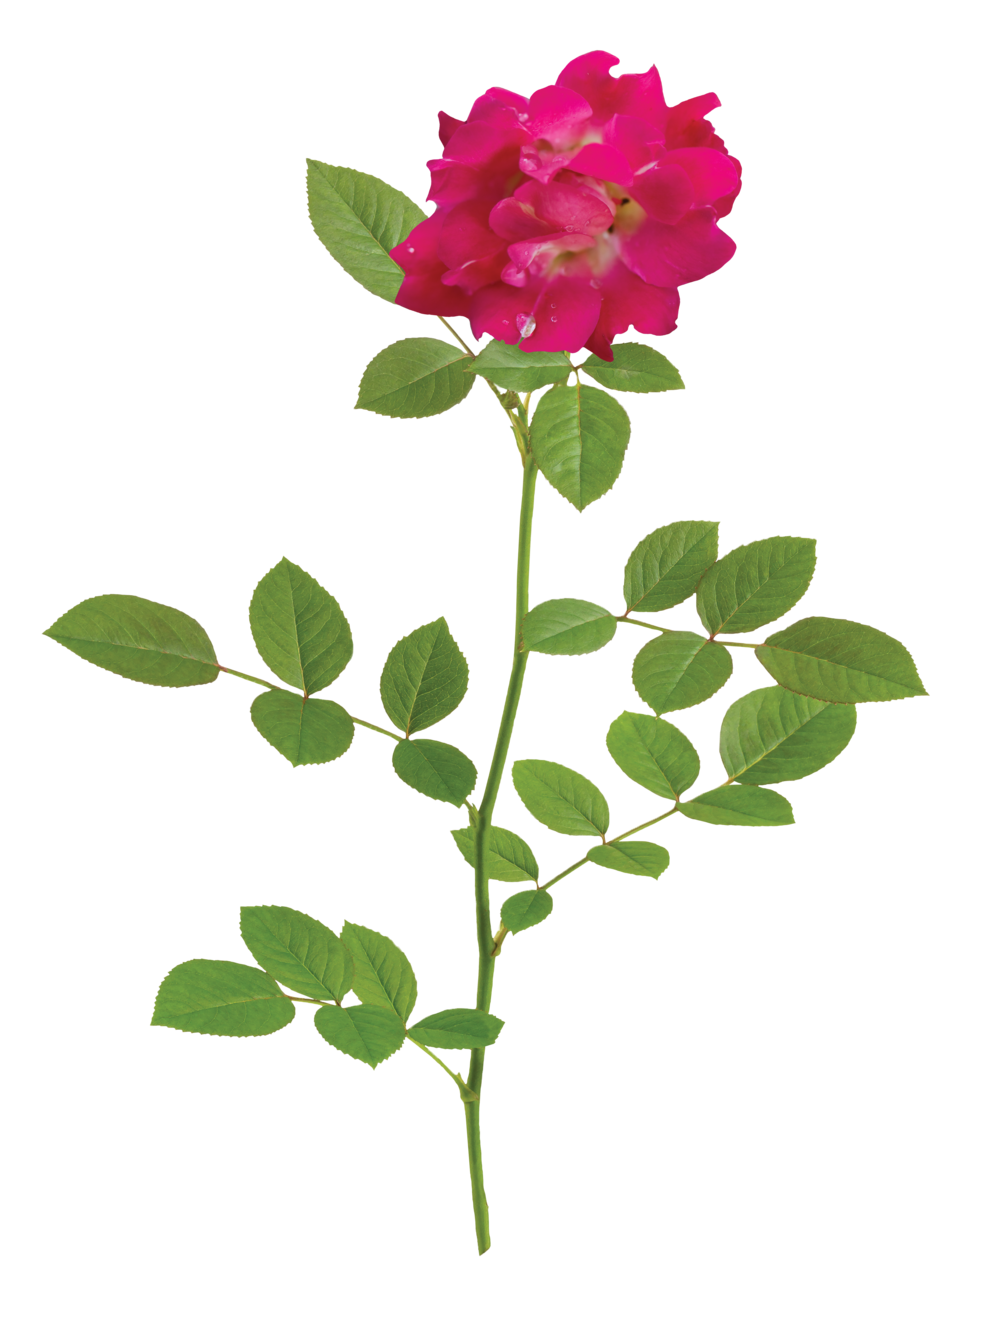 The Red Drift® Rose - 'Meigalpio' PP 17,877The easy nature and natural beauty of Red Drift® lends to the success of this rose. The petite red flowers prove to be an elegant addition to any garden, especially when able to naturally drape over a rock wall or edge.Zones: 4–11   |   Exposure: Full sun  |   Habit: 1½'h x 2½'w